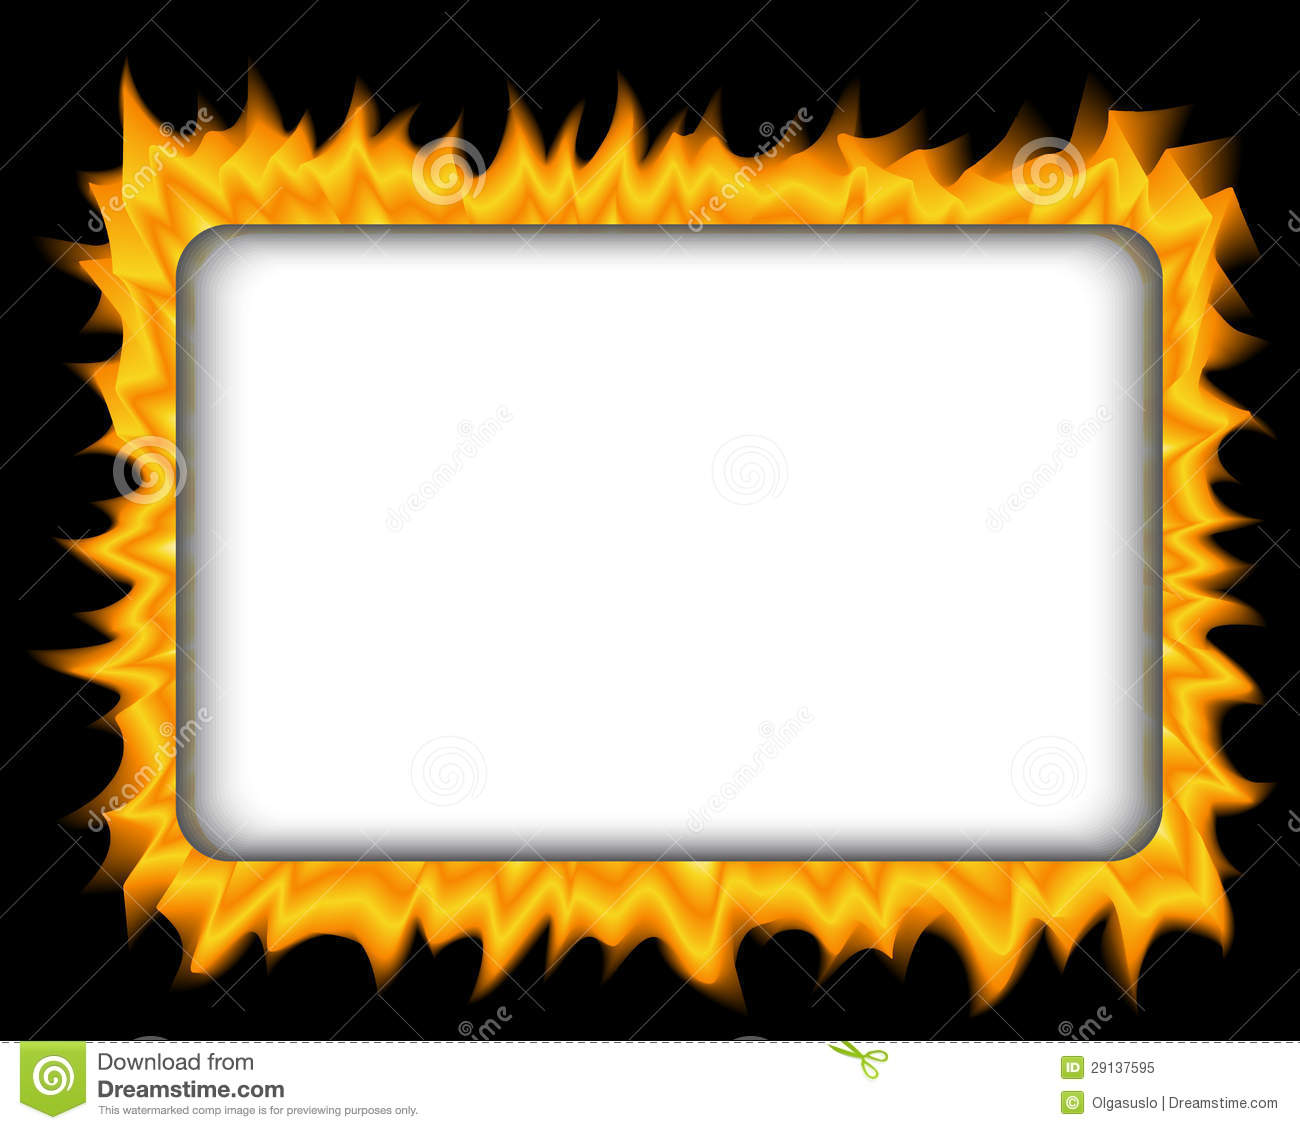 Fire Frame Royalty Free Stock Photo - Image: 29137595